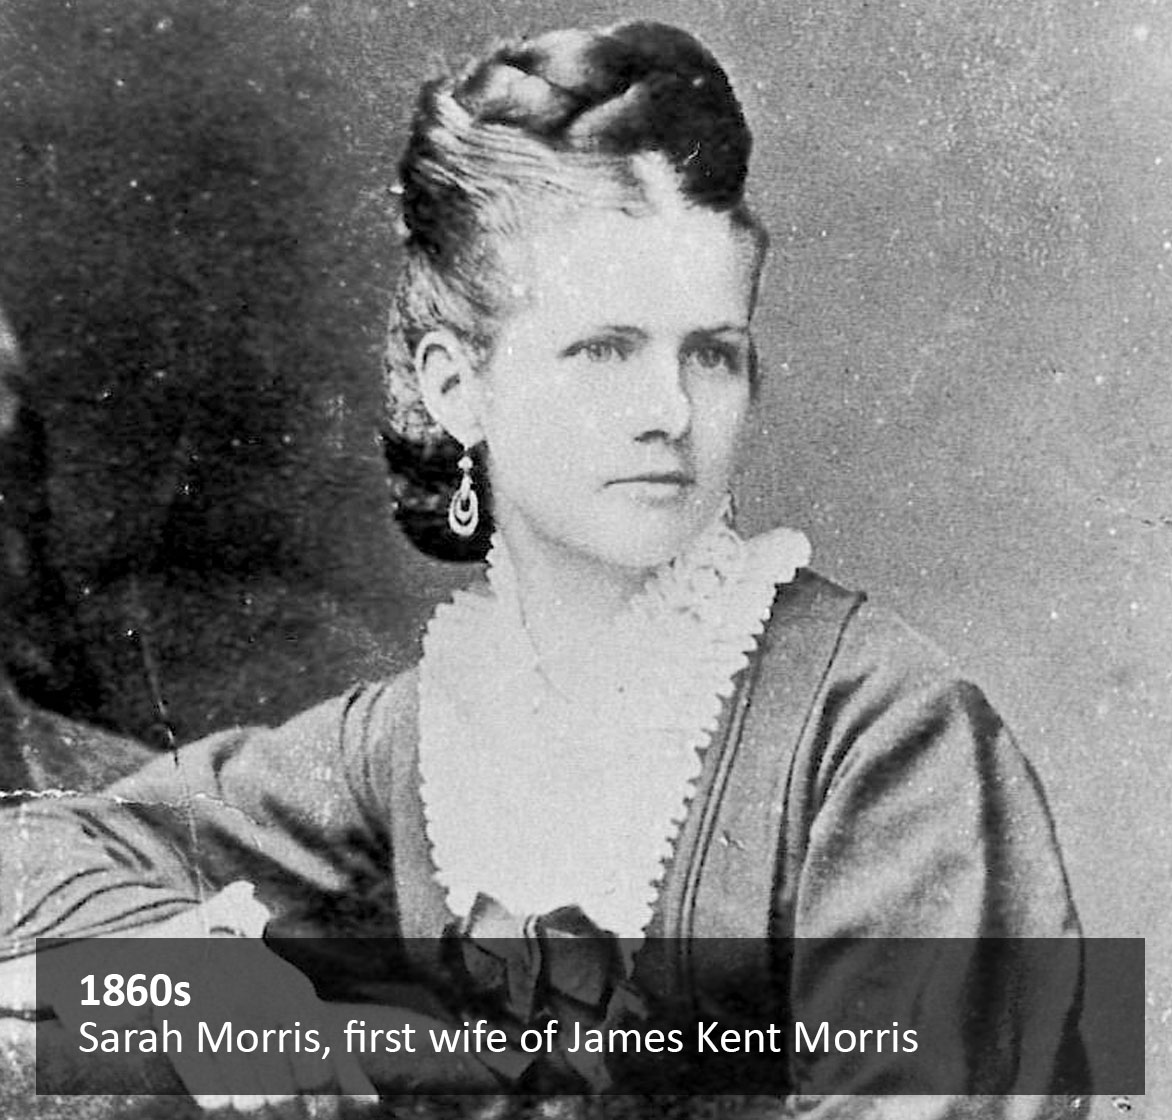 Sarah Morris, first wife of James Kent Morris